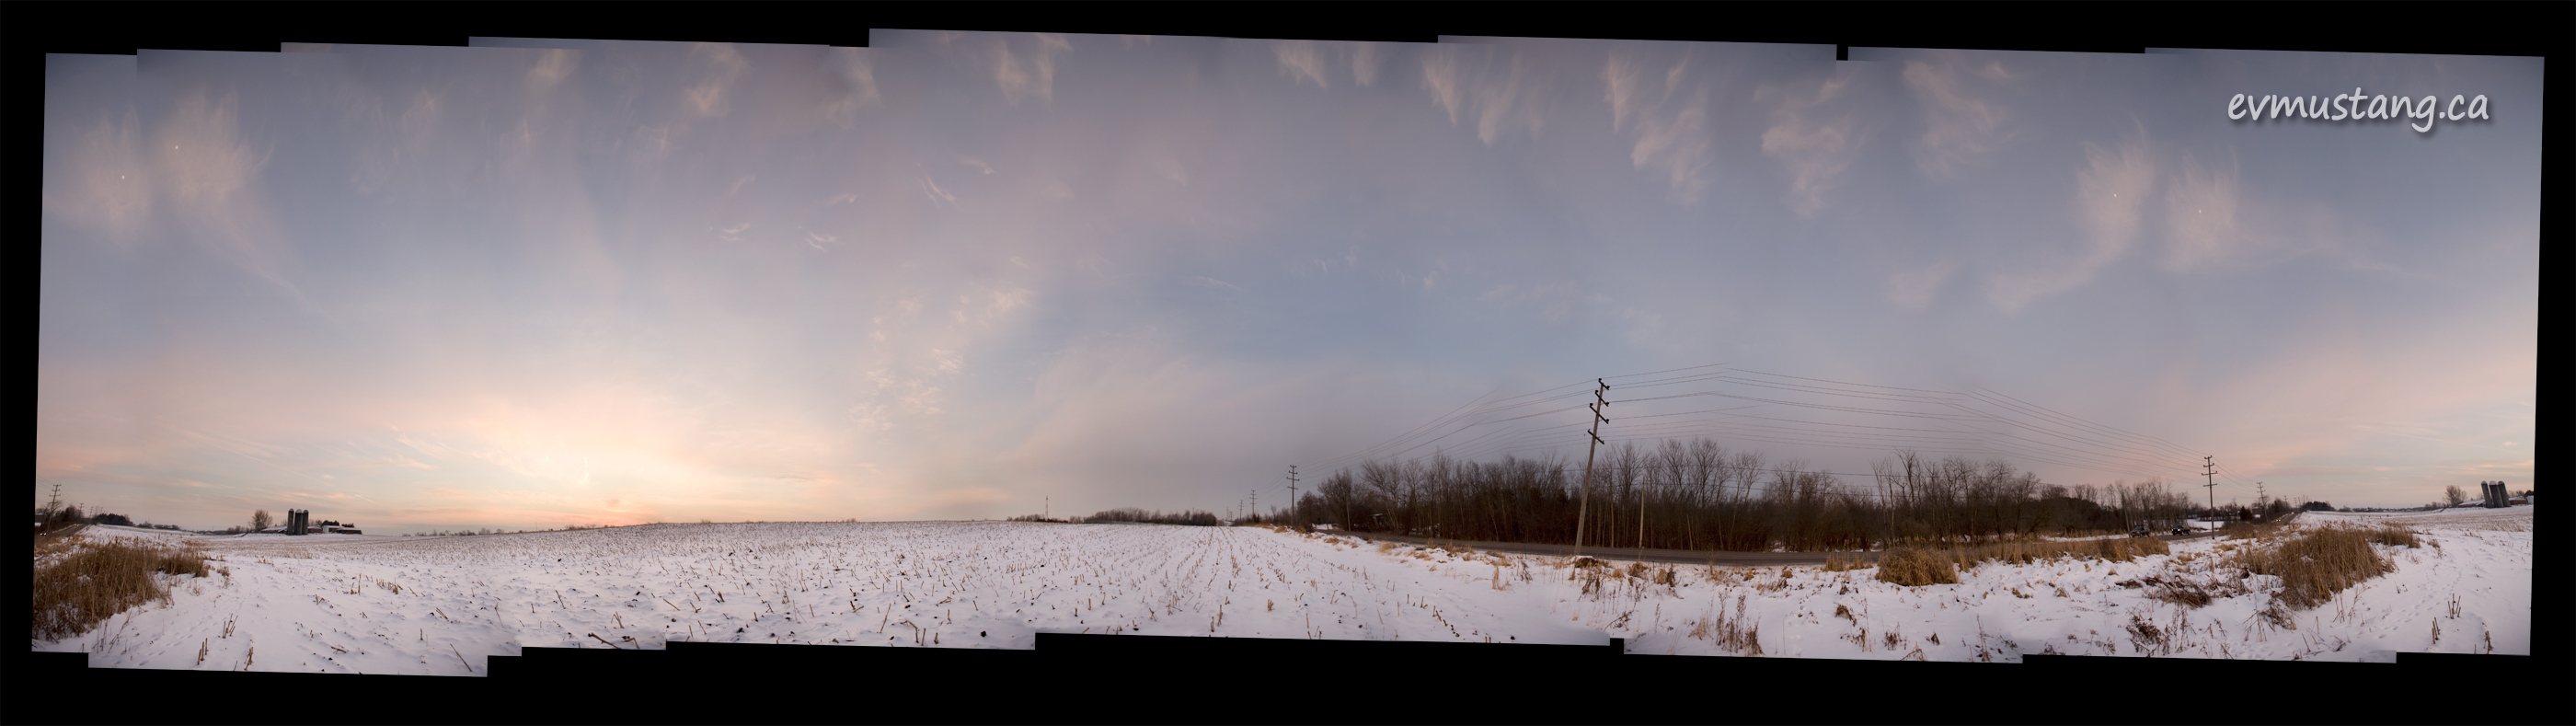 panoramic image of sunset over filed covered in snow